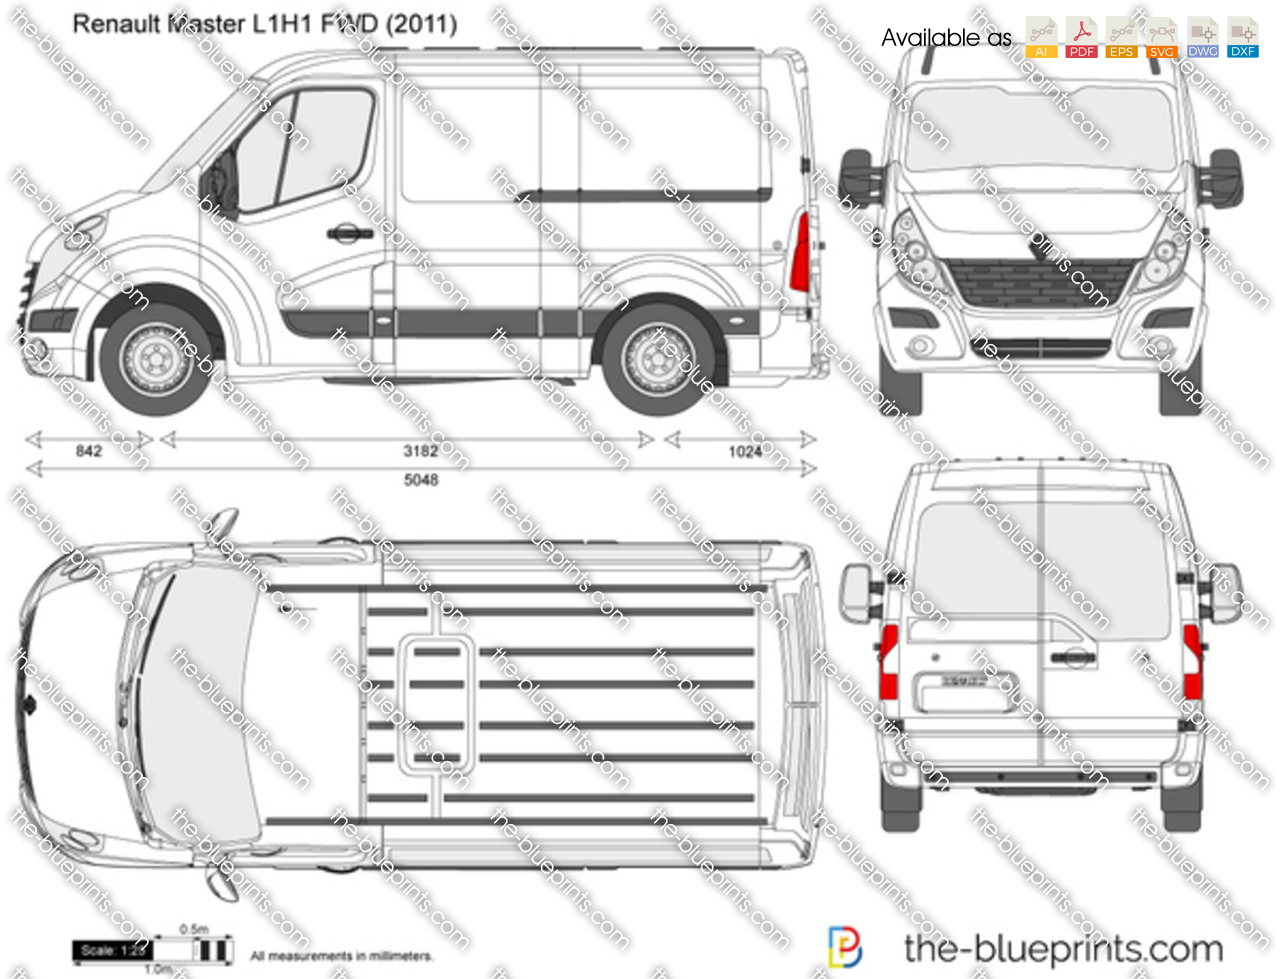 renault master l1h1 fwd vector drawing